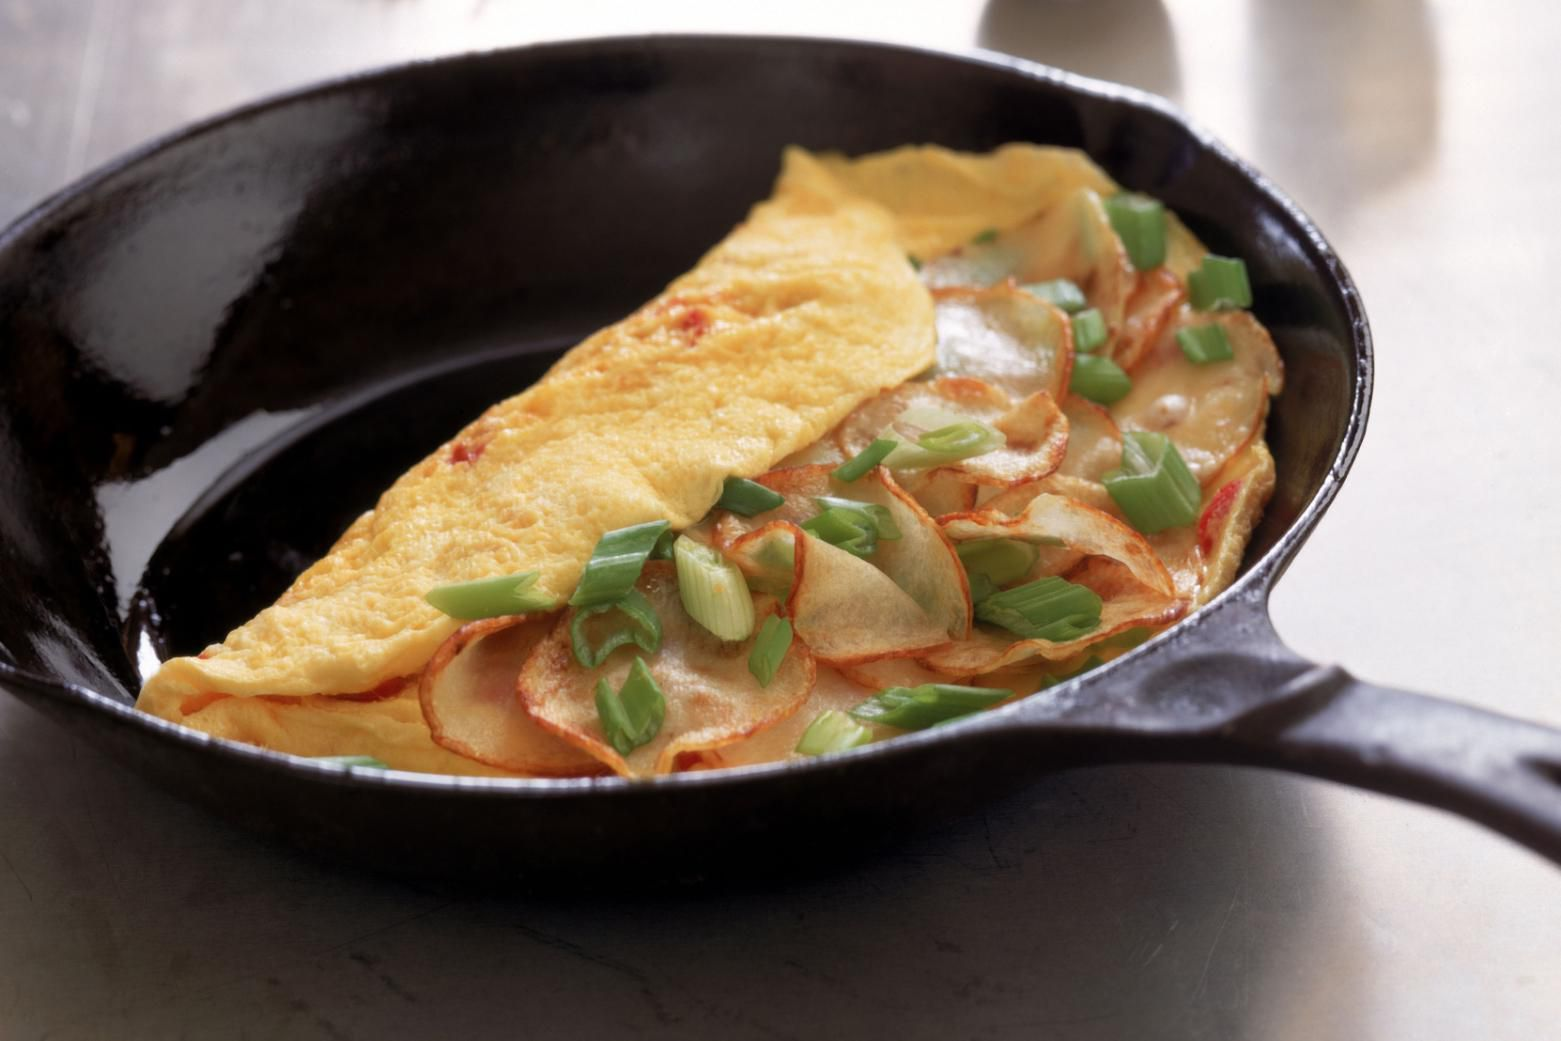 a French omelette with ham, cheese, and green onions